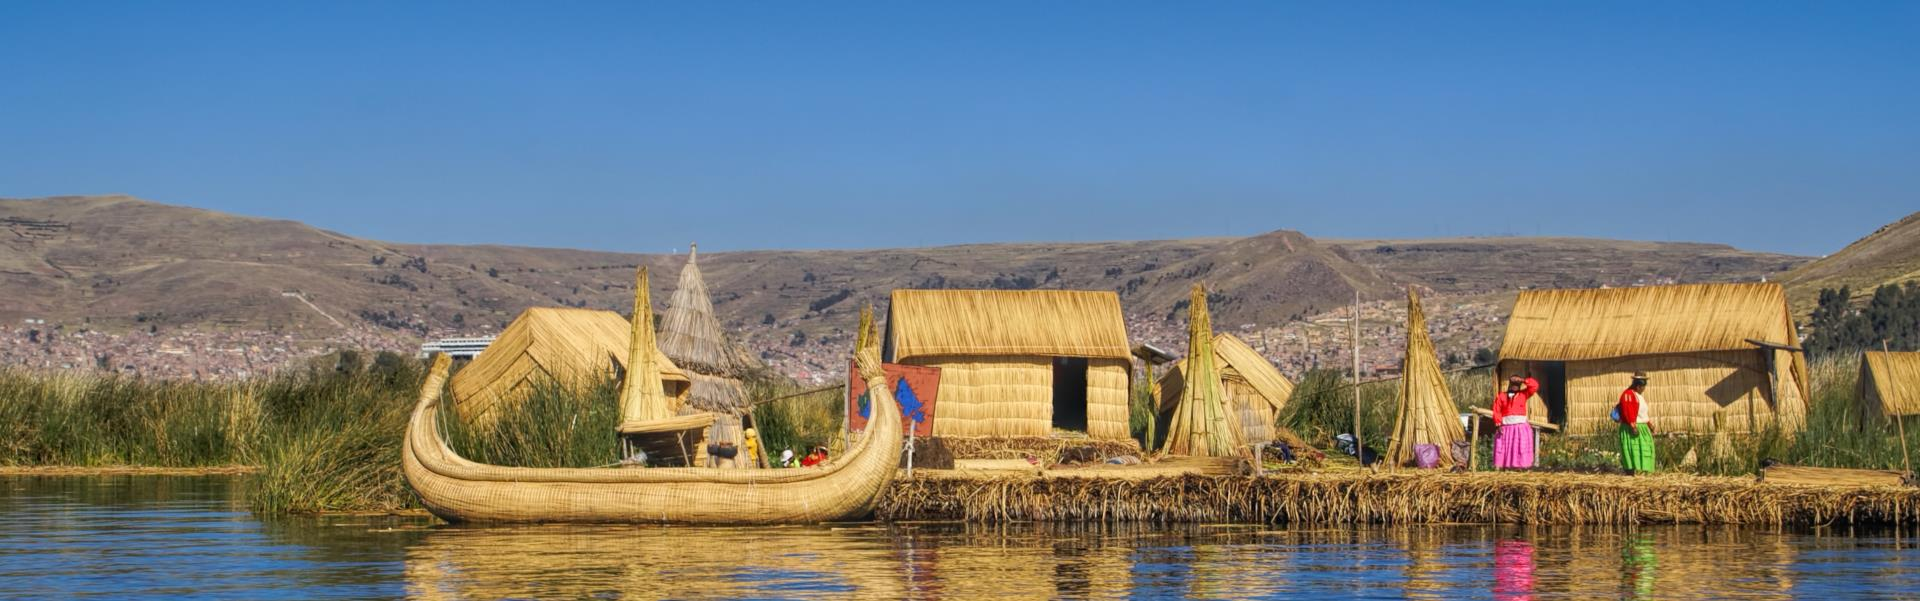 Lake Titicaca Holidays